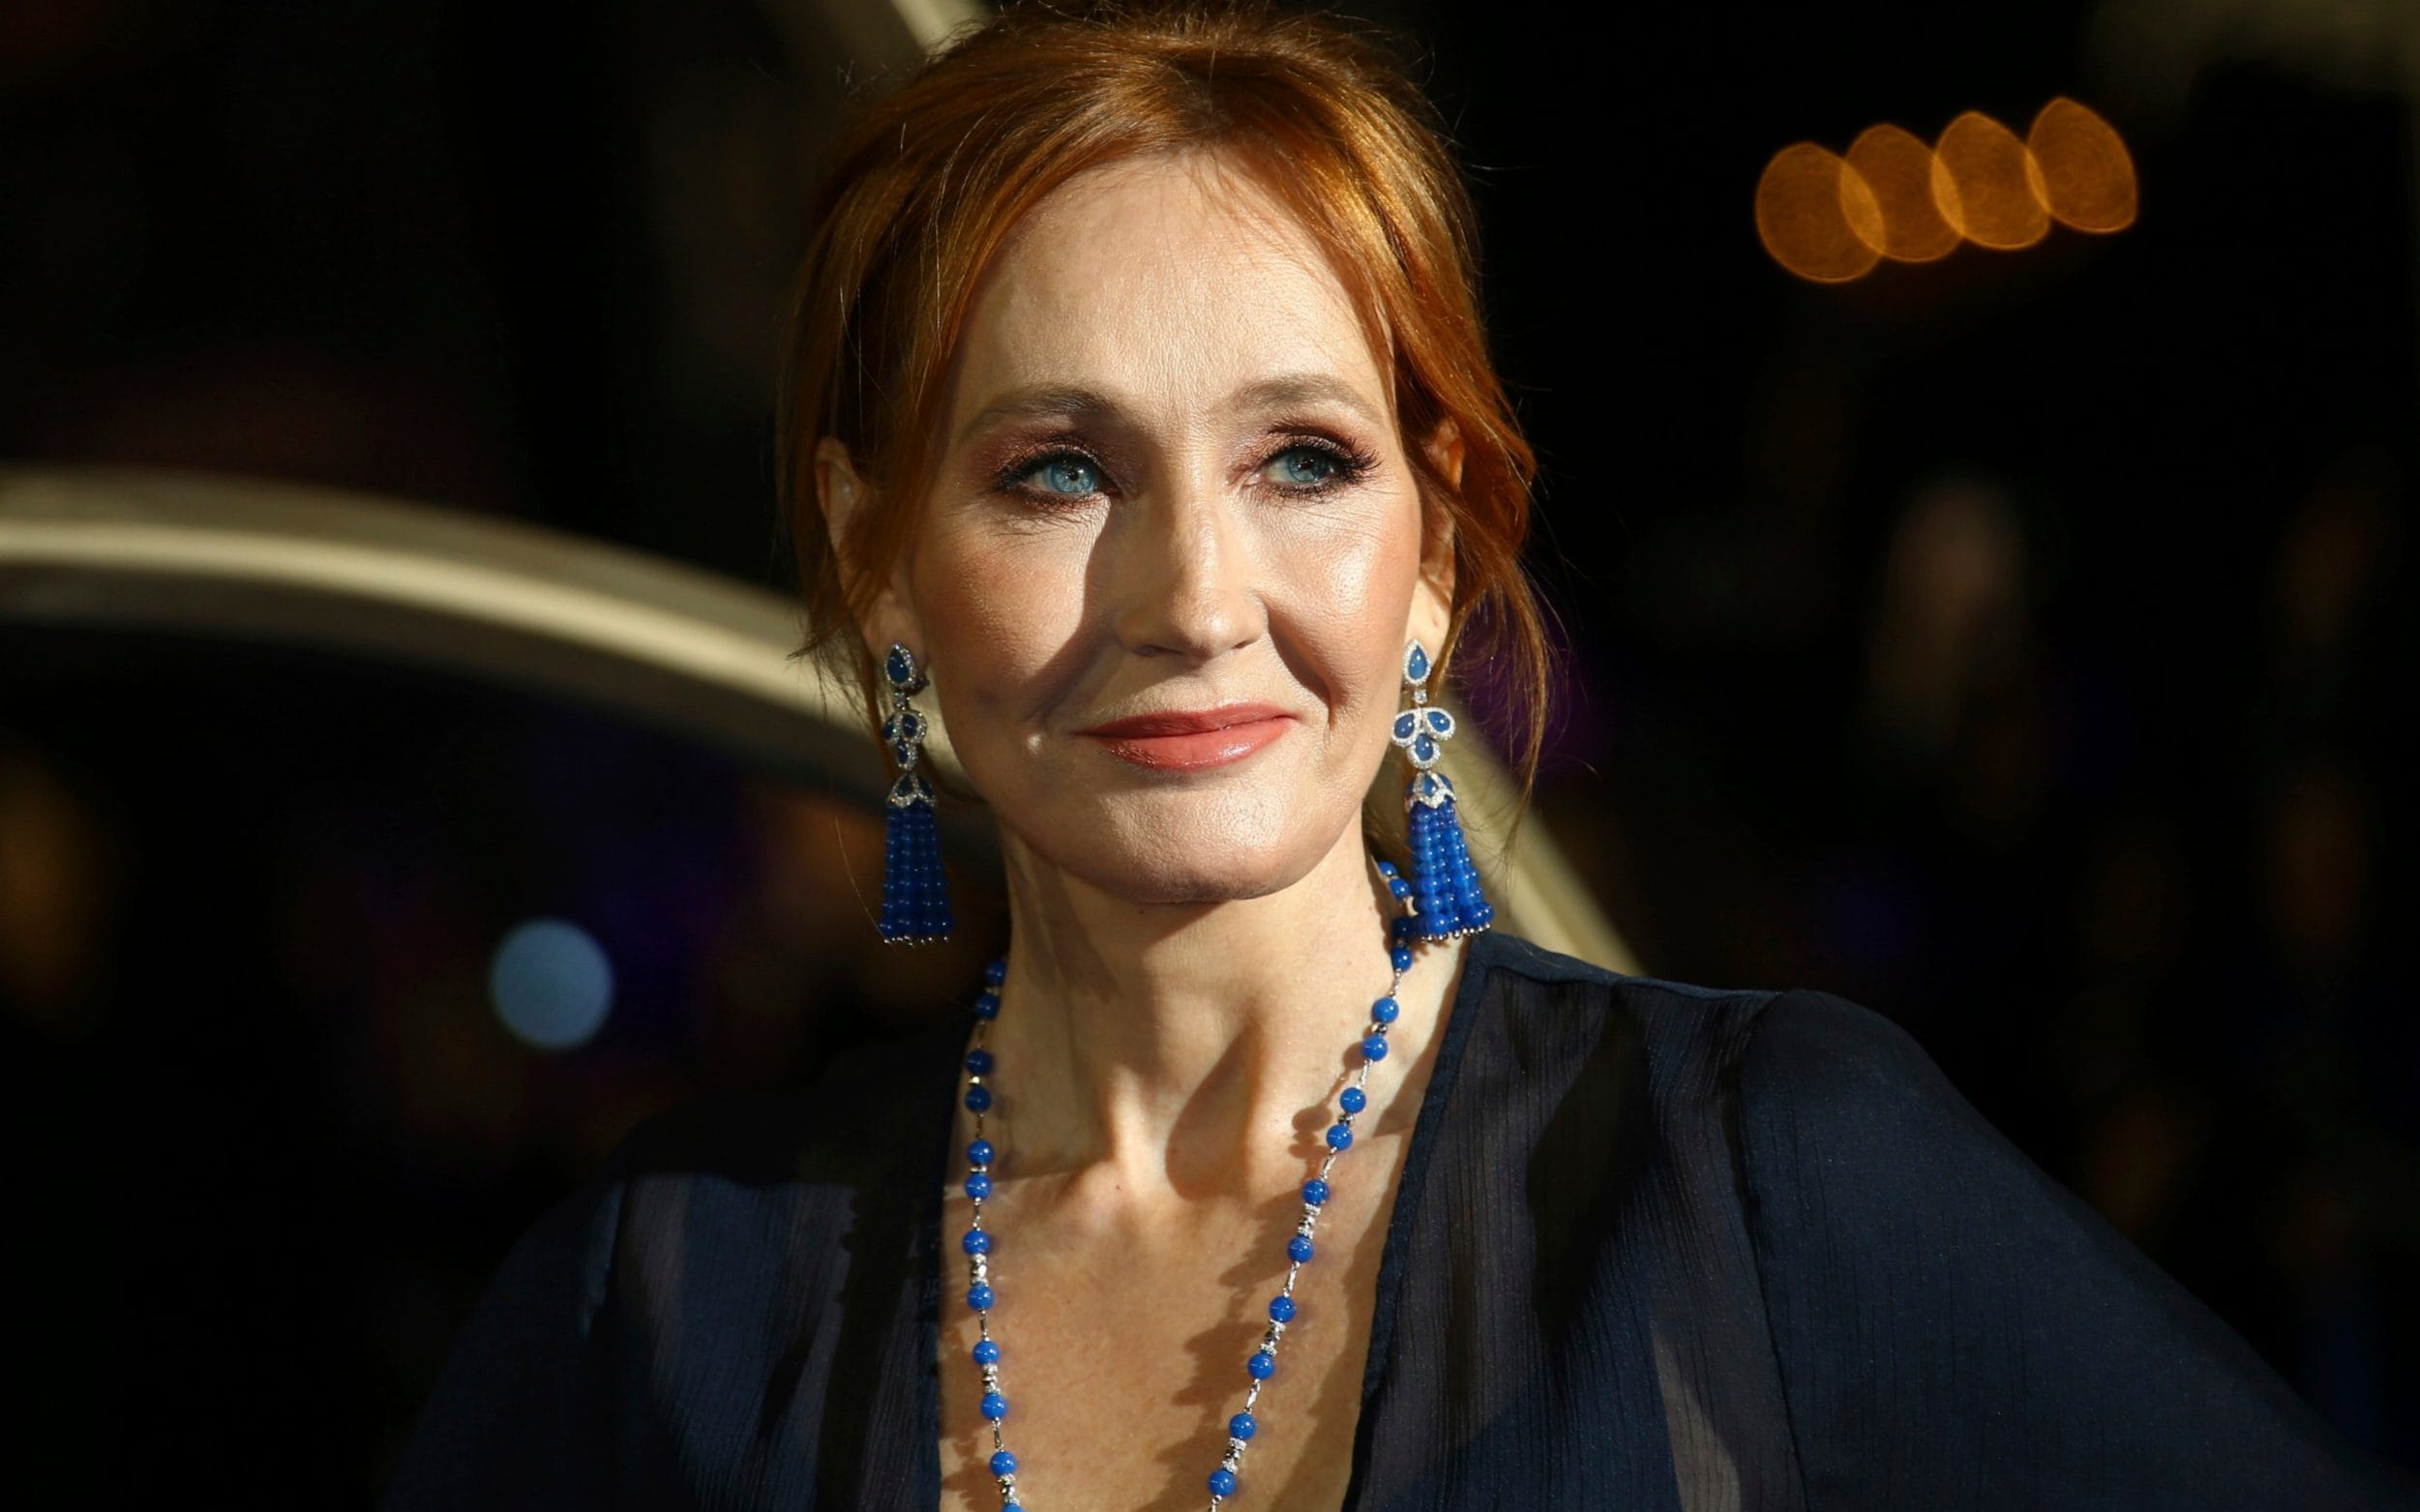 JK Rowling has fallen in with the wrong crowd, says trans activist